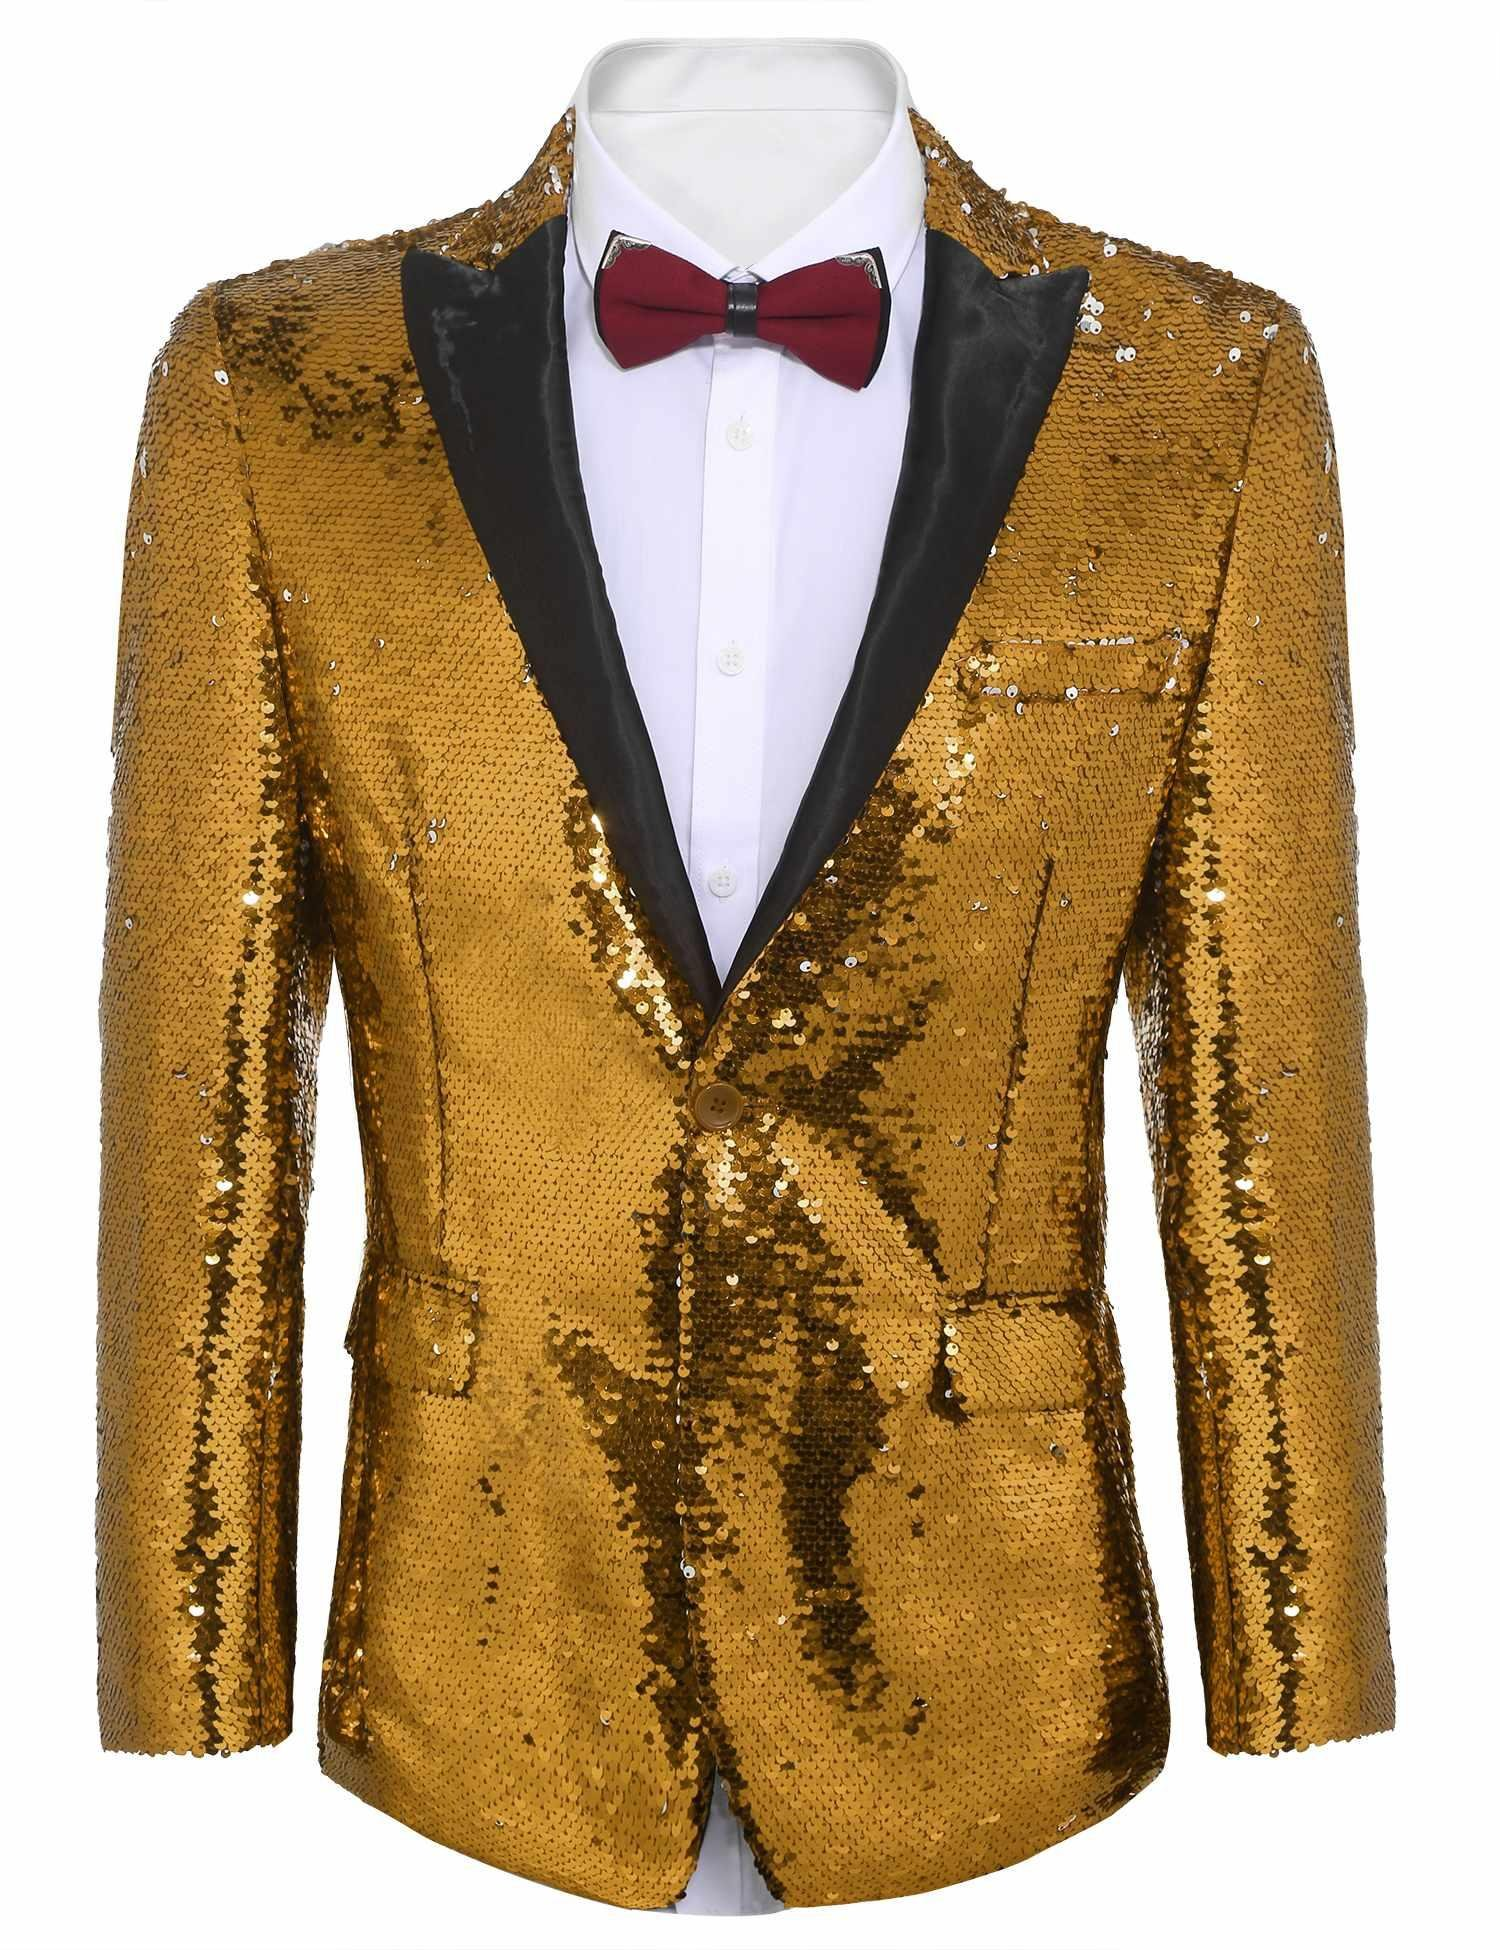 COOFANDY Shiny Sequins Suit Jacket Blazer One Button Tuxedo for Party,Wedding,Banquet,Christmas,Nightclub,Golden Yellow,Medium by COOFANDY